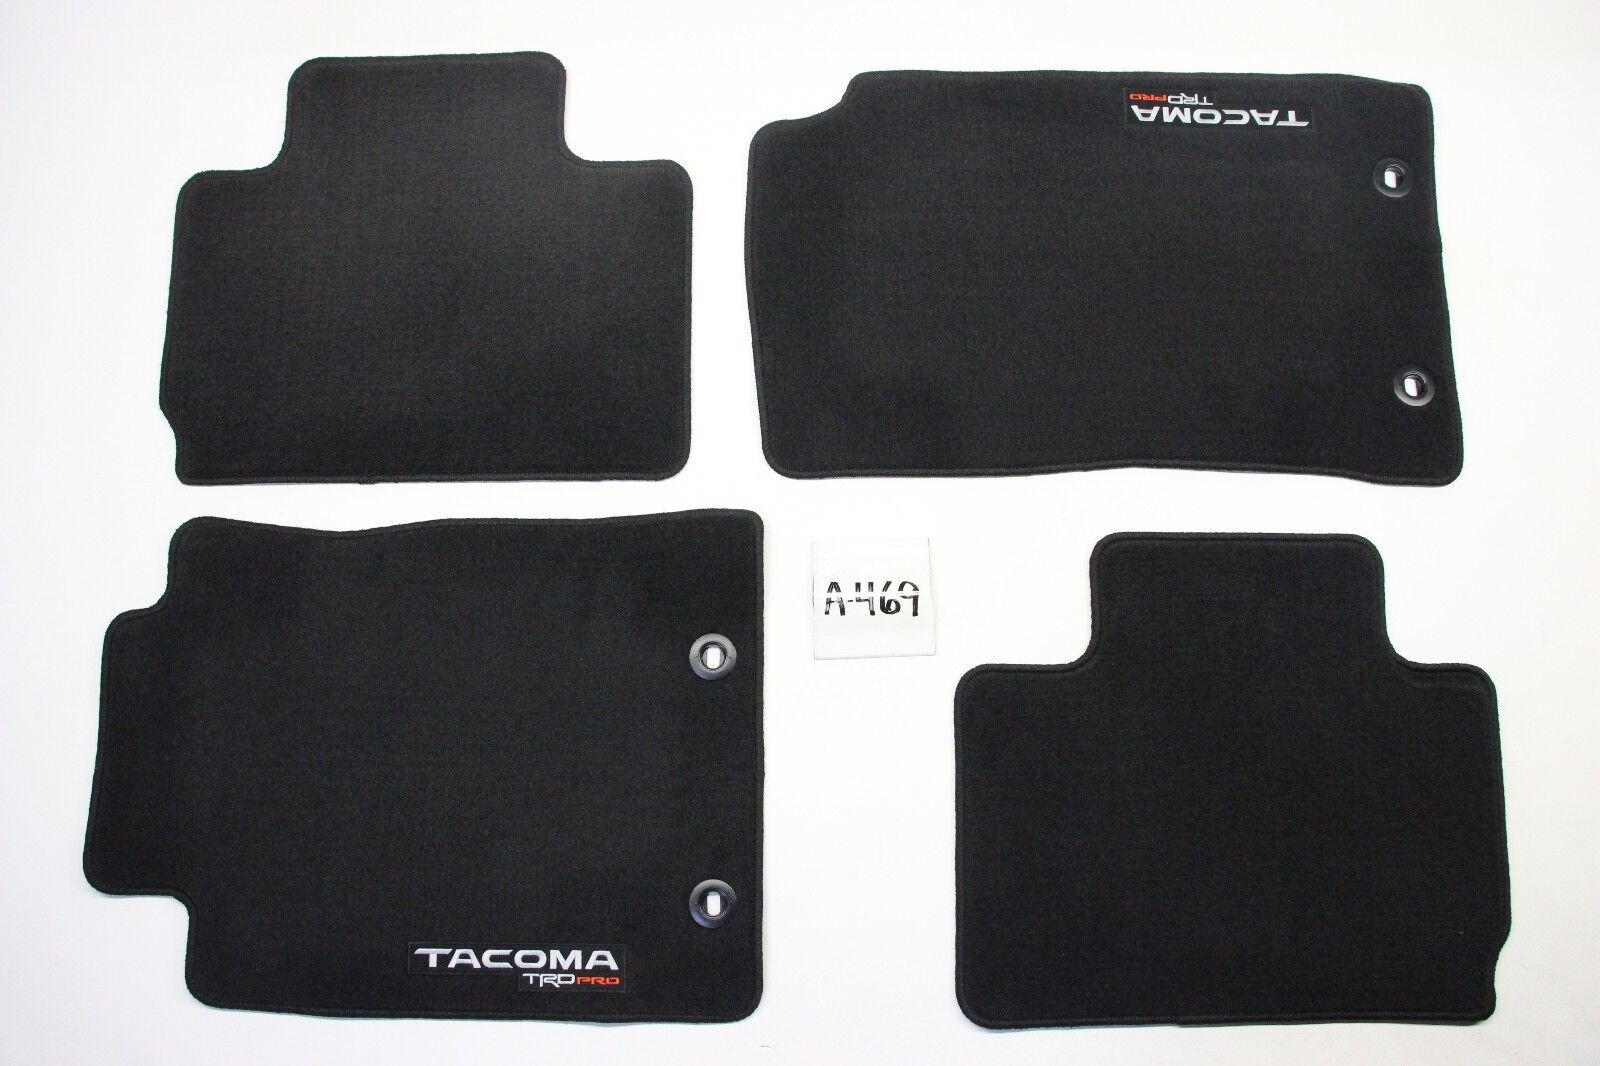 handphone to download toyota for tacoma accessory with regard mats by packages weather the size all mat floor